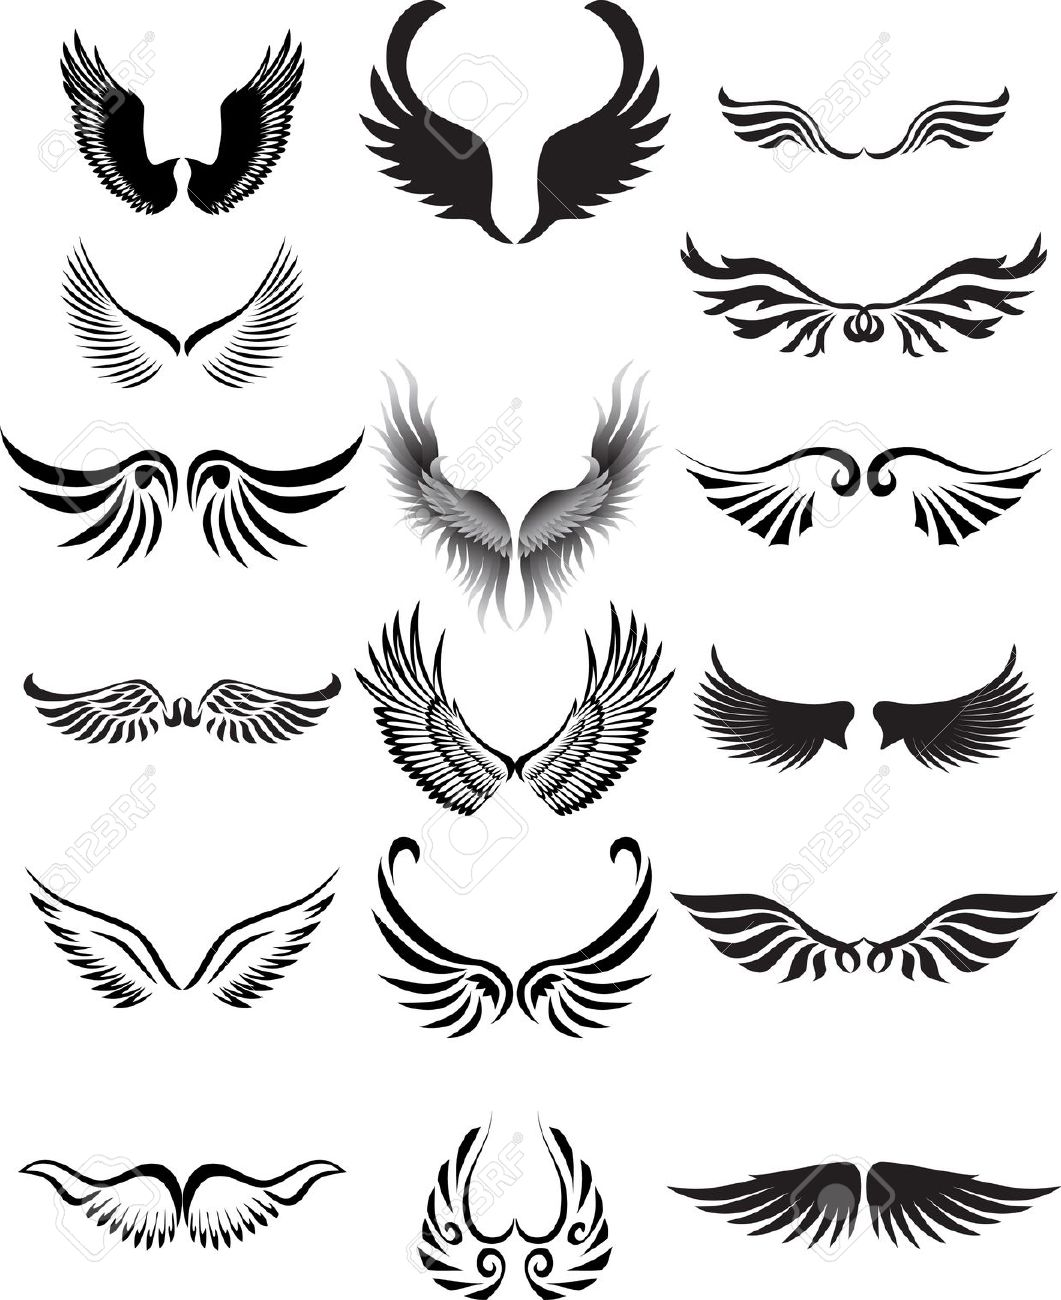 Curved Angel Wings Silhouette Clipart 20 Free Cliparts